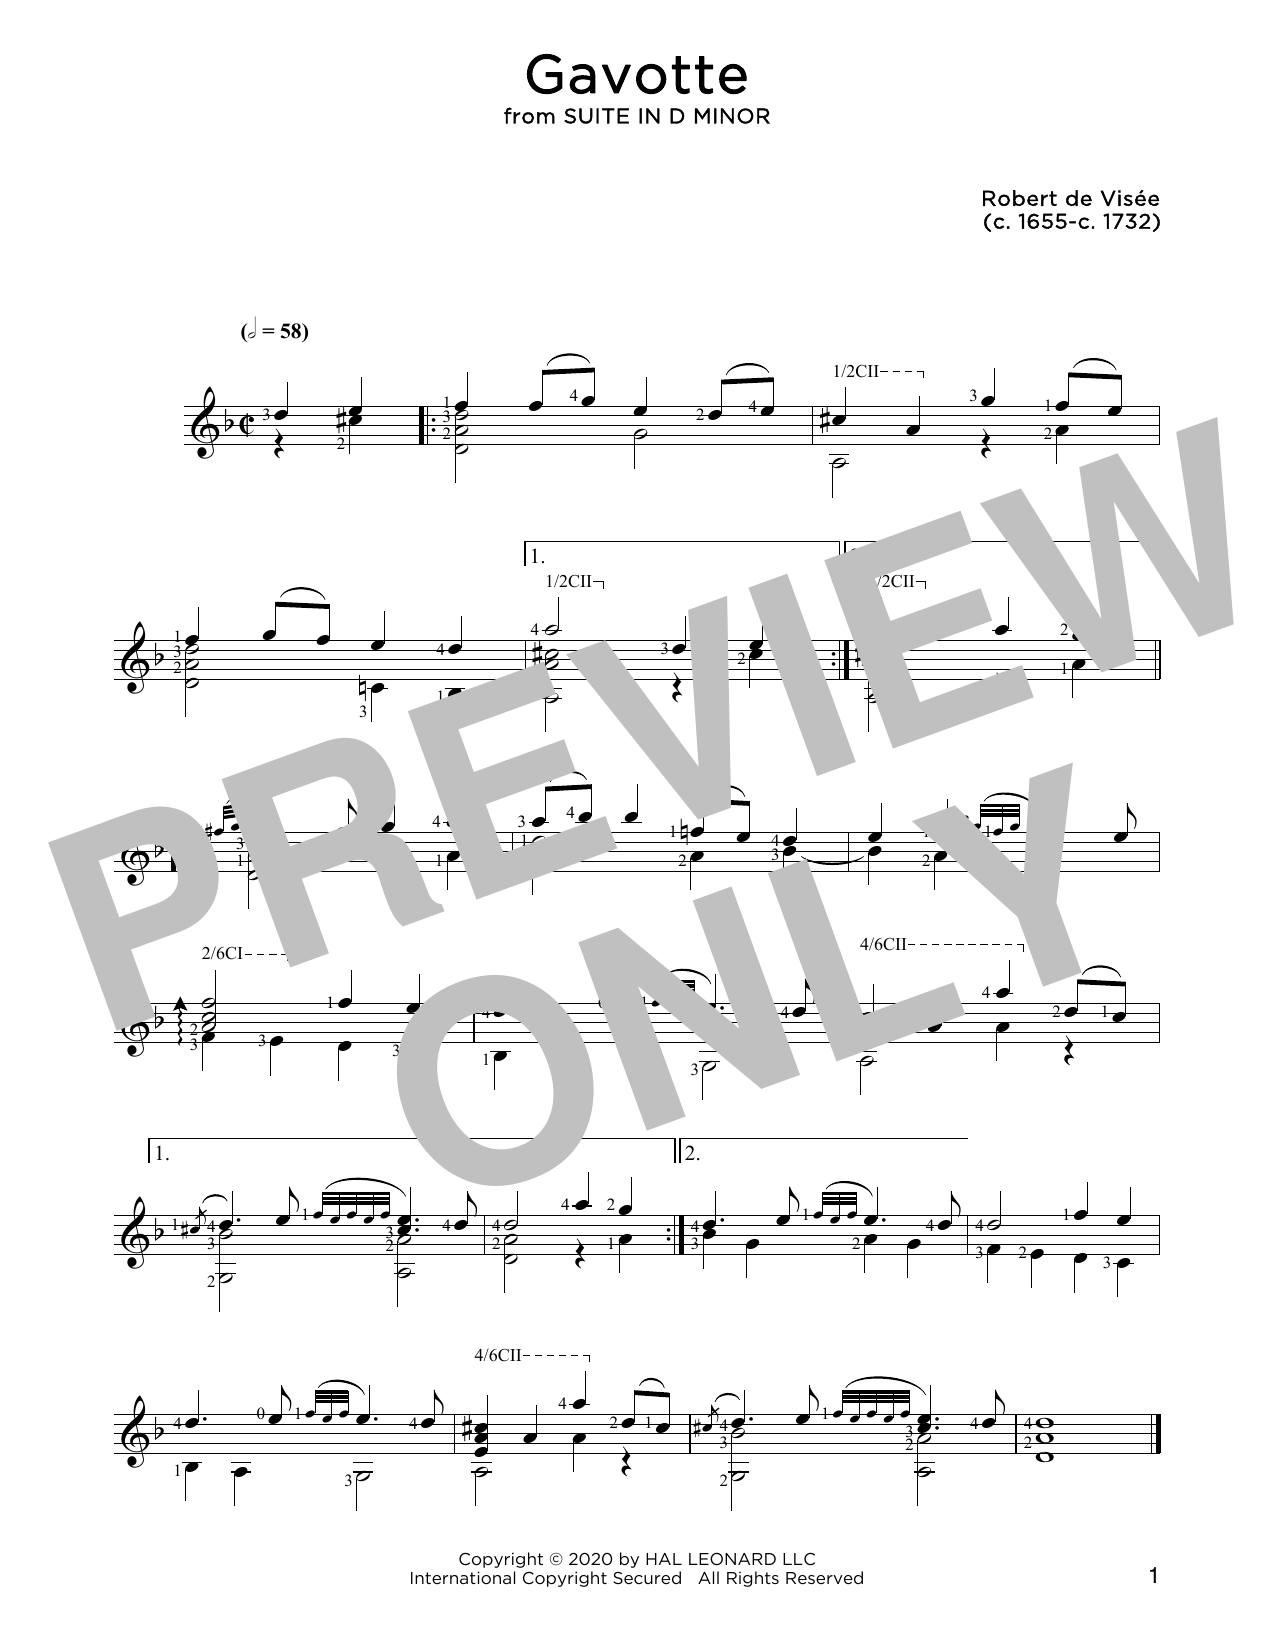 Robert de Visee Gavotte sheet music notes and chords. Download Printable PDF.